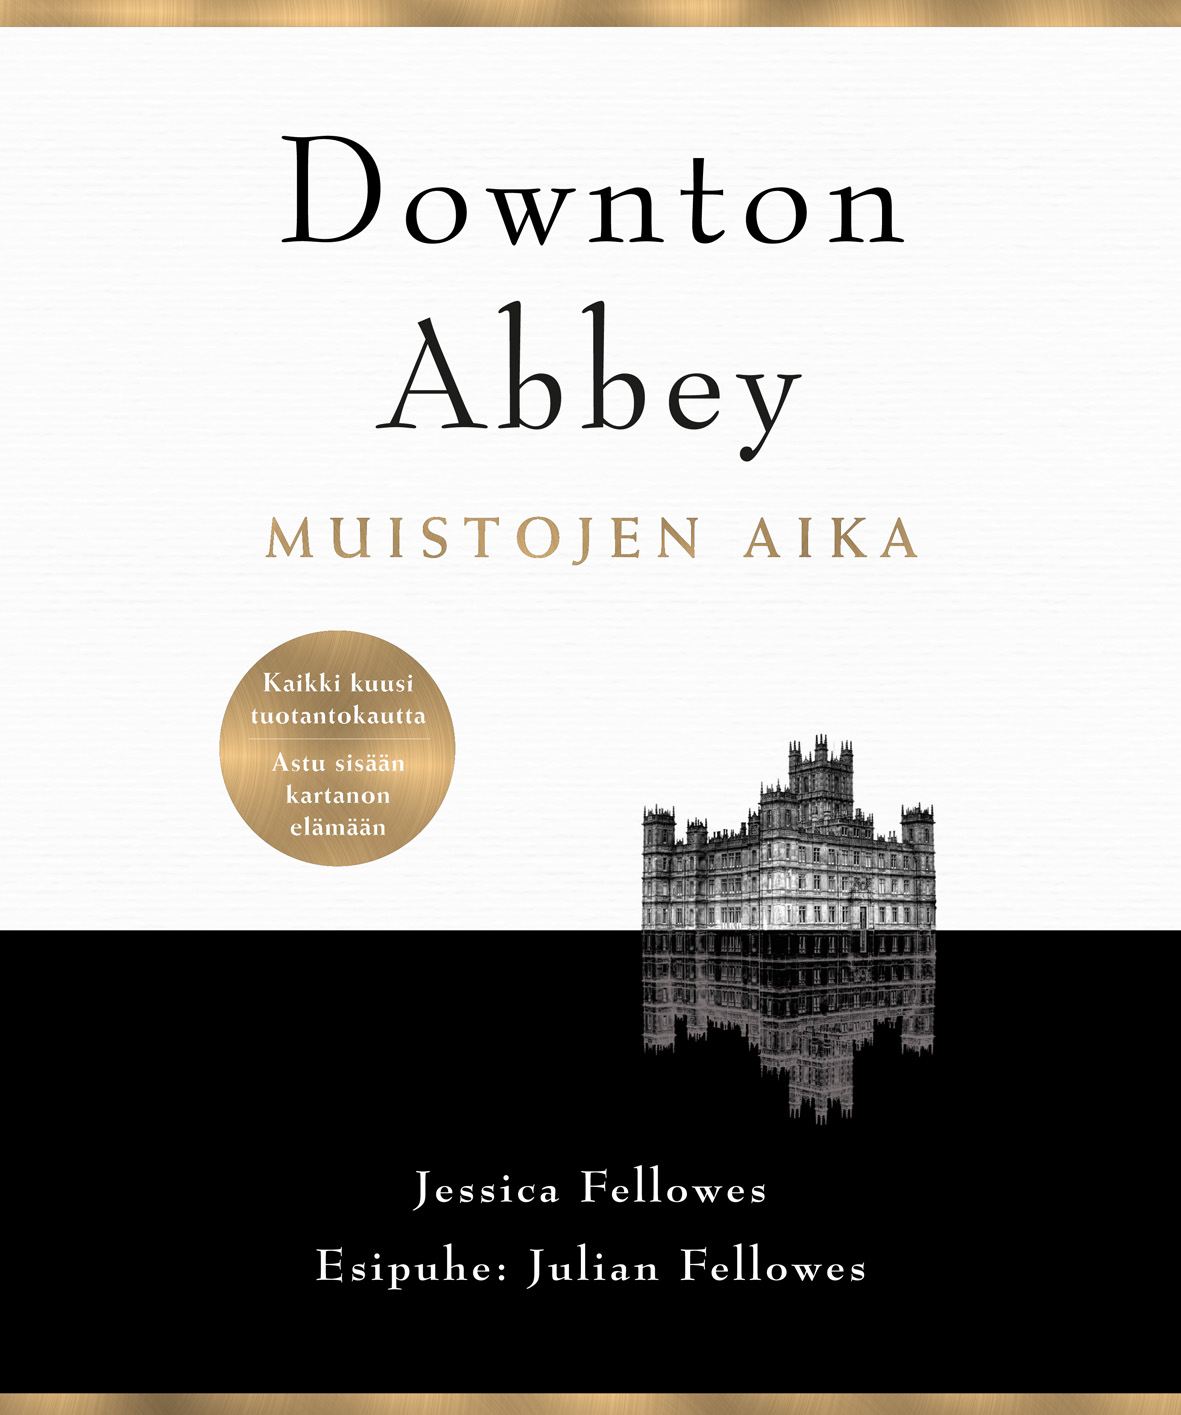 downton_abbey_muistojen_aika.jpg